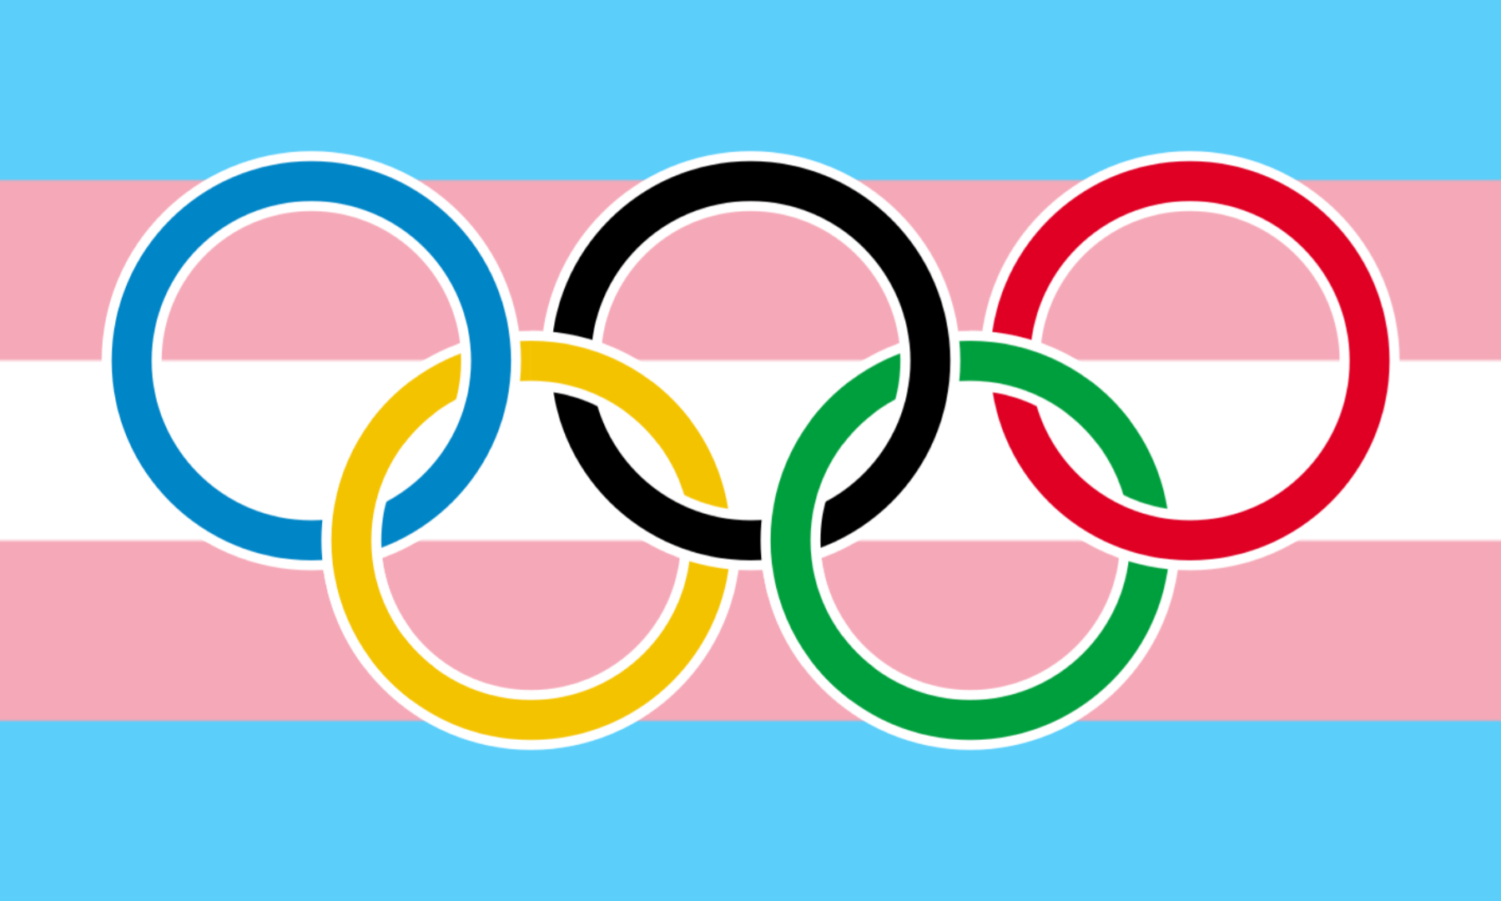 What are your thoughts on this controversy? Both the transgender flag and Olympic rings were labeled for reuse from Wikimedia Commons.